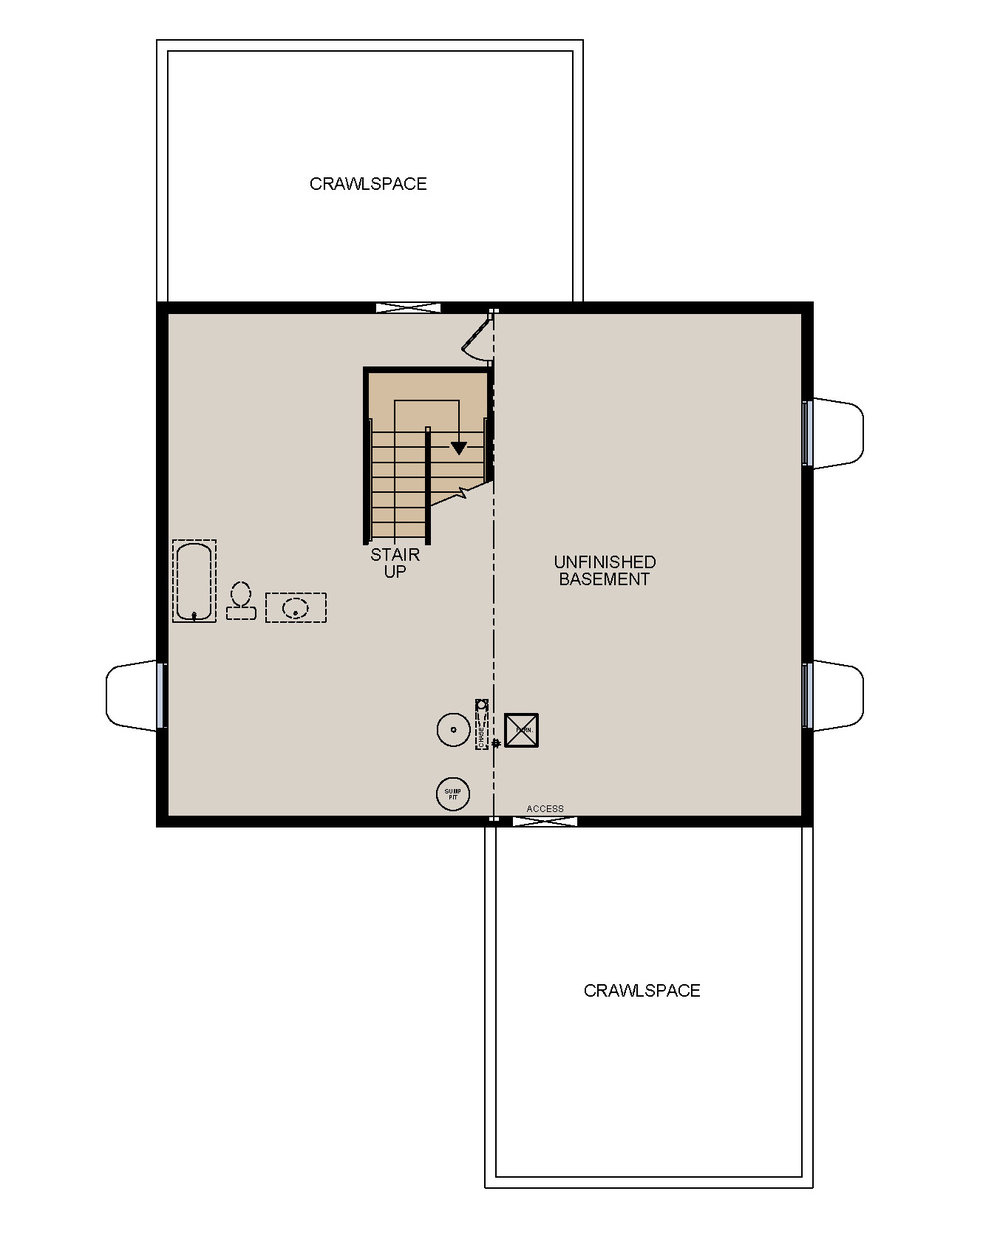 2013madison-basementplan.jpg